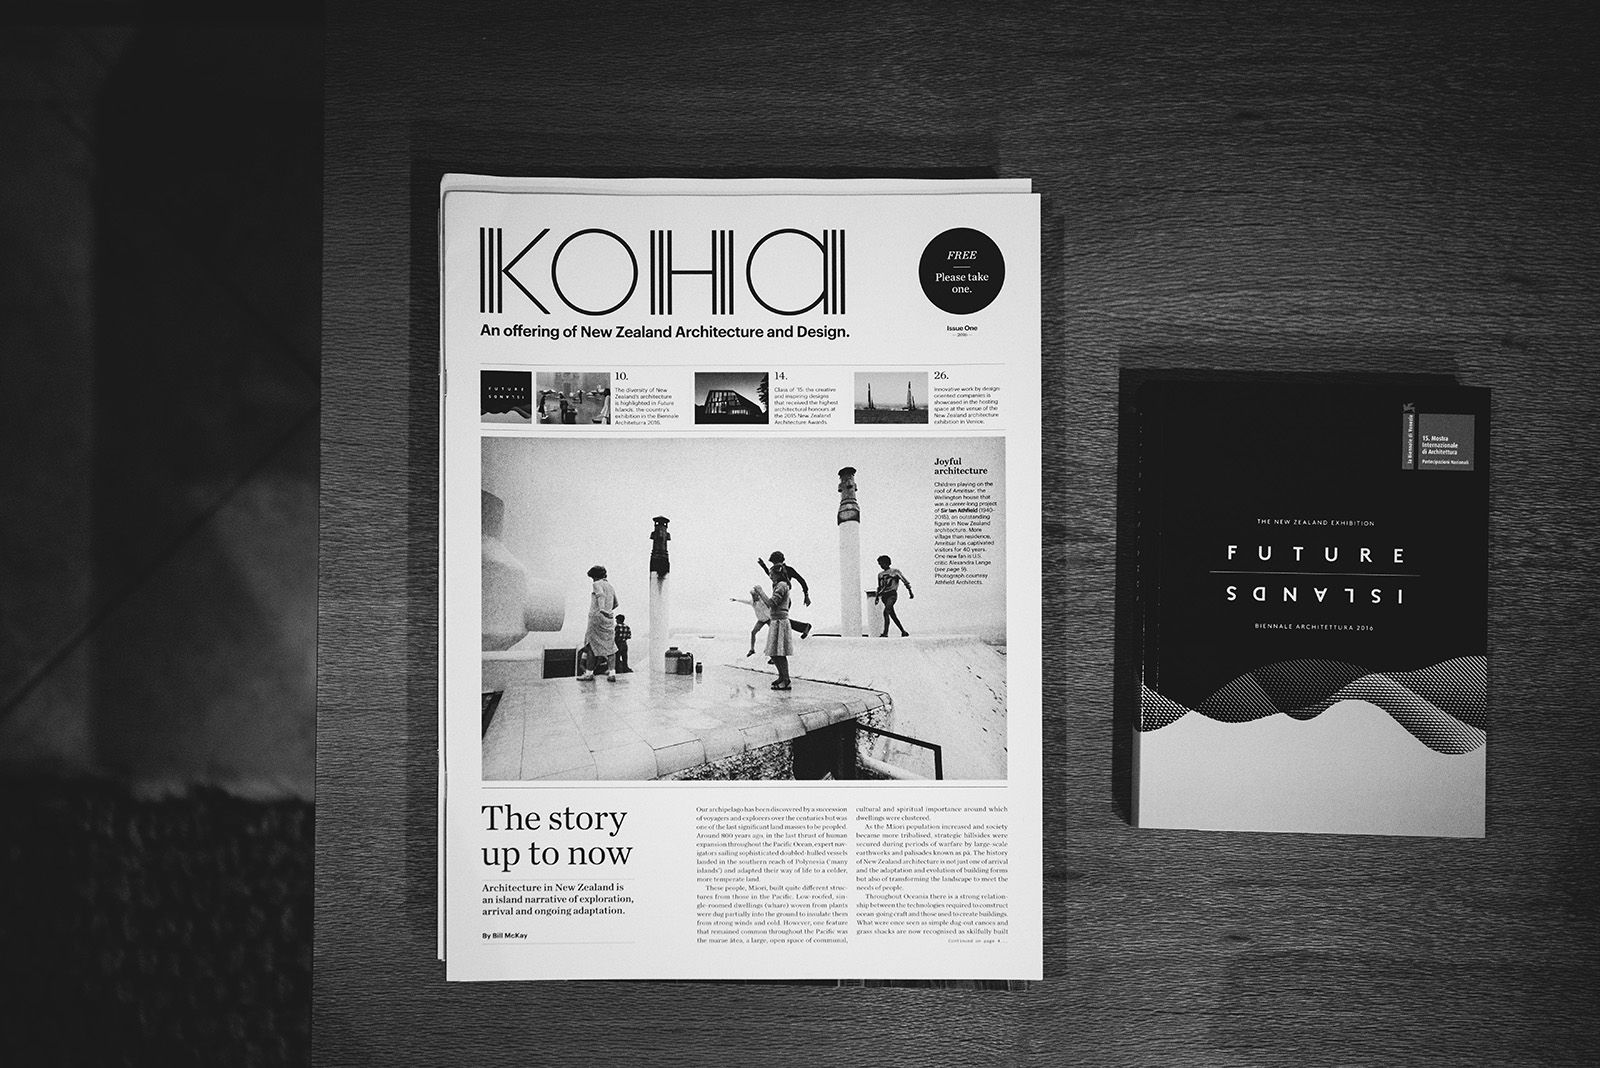 'Koha', published by the New Zealand Institute of Architects